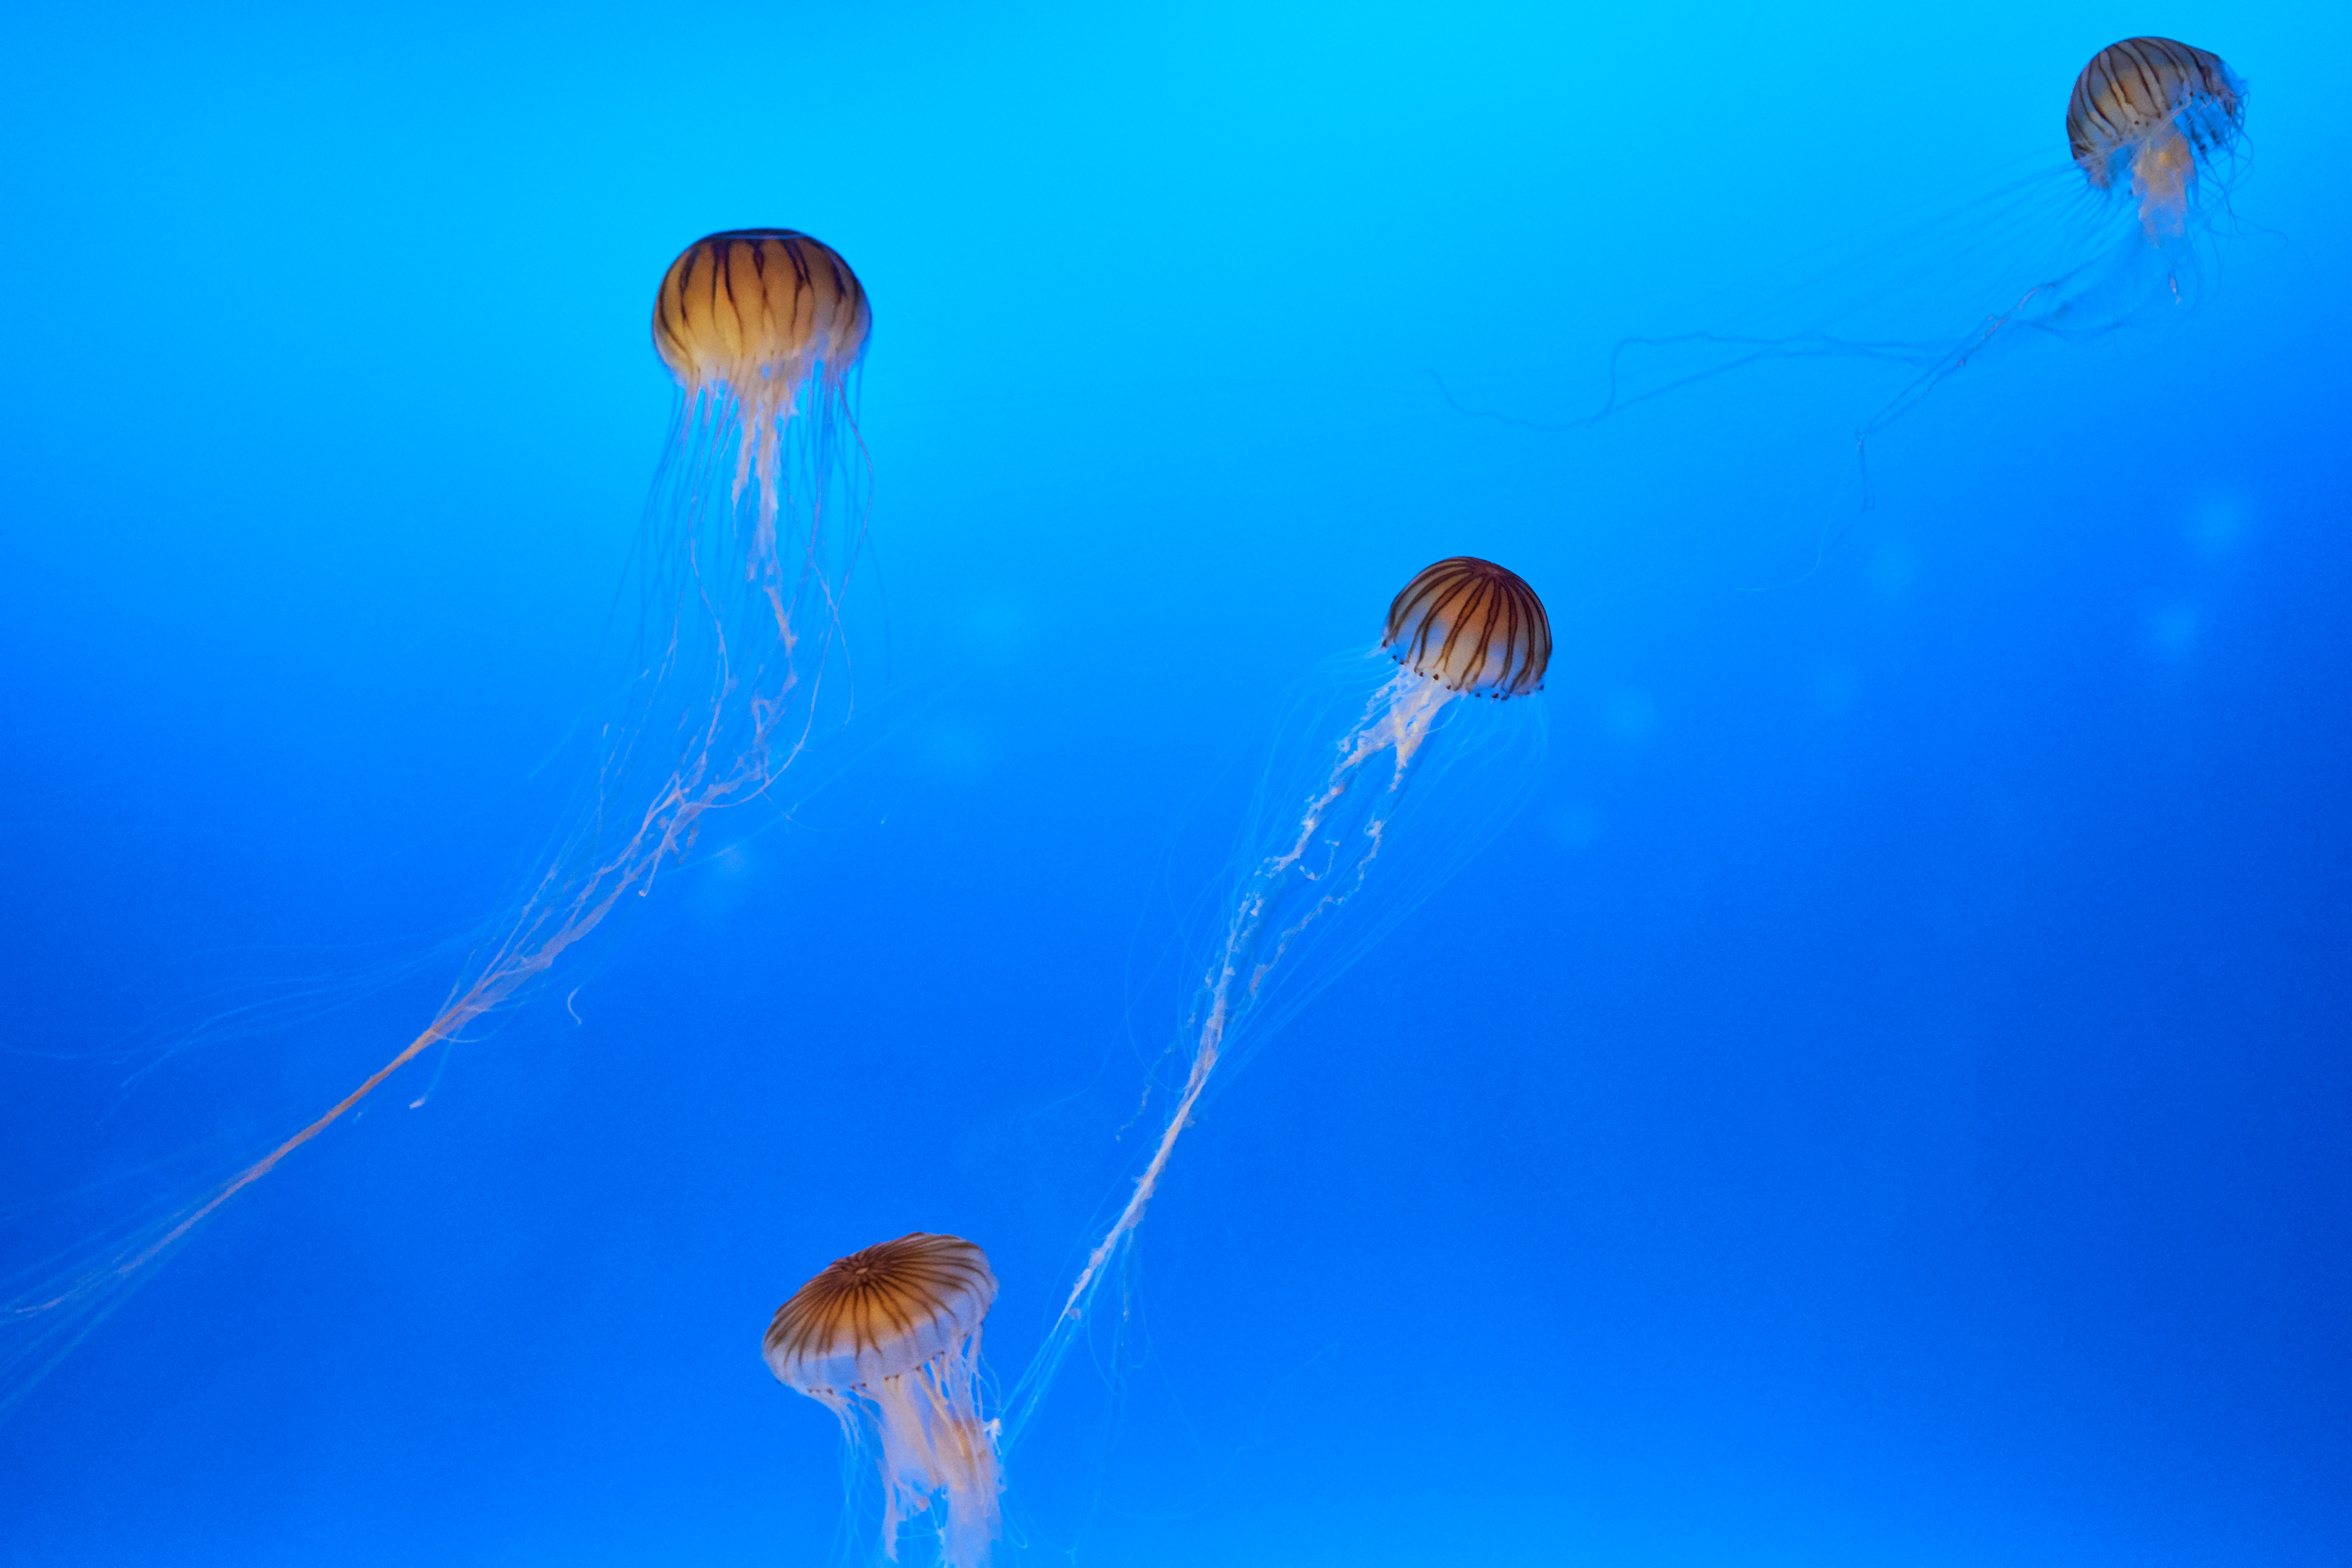 school of jelly fishes